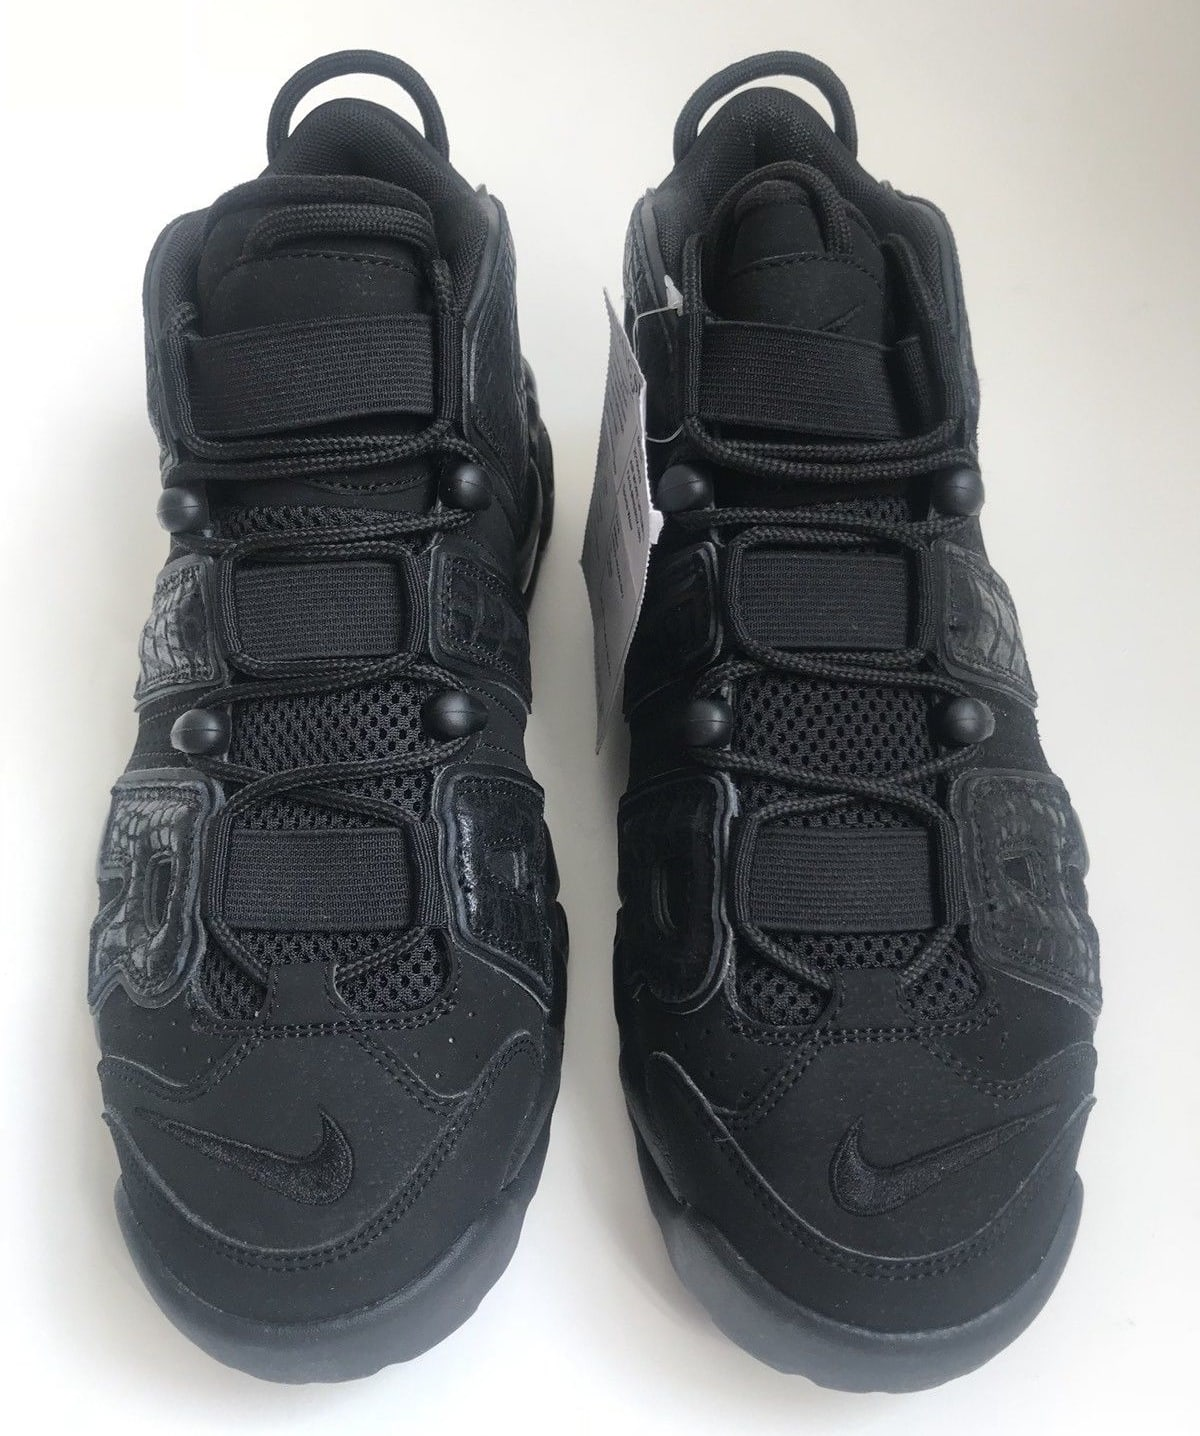 Nike Air More Uptempo 'Croc' Sample (Front Pair)